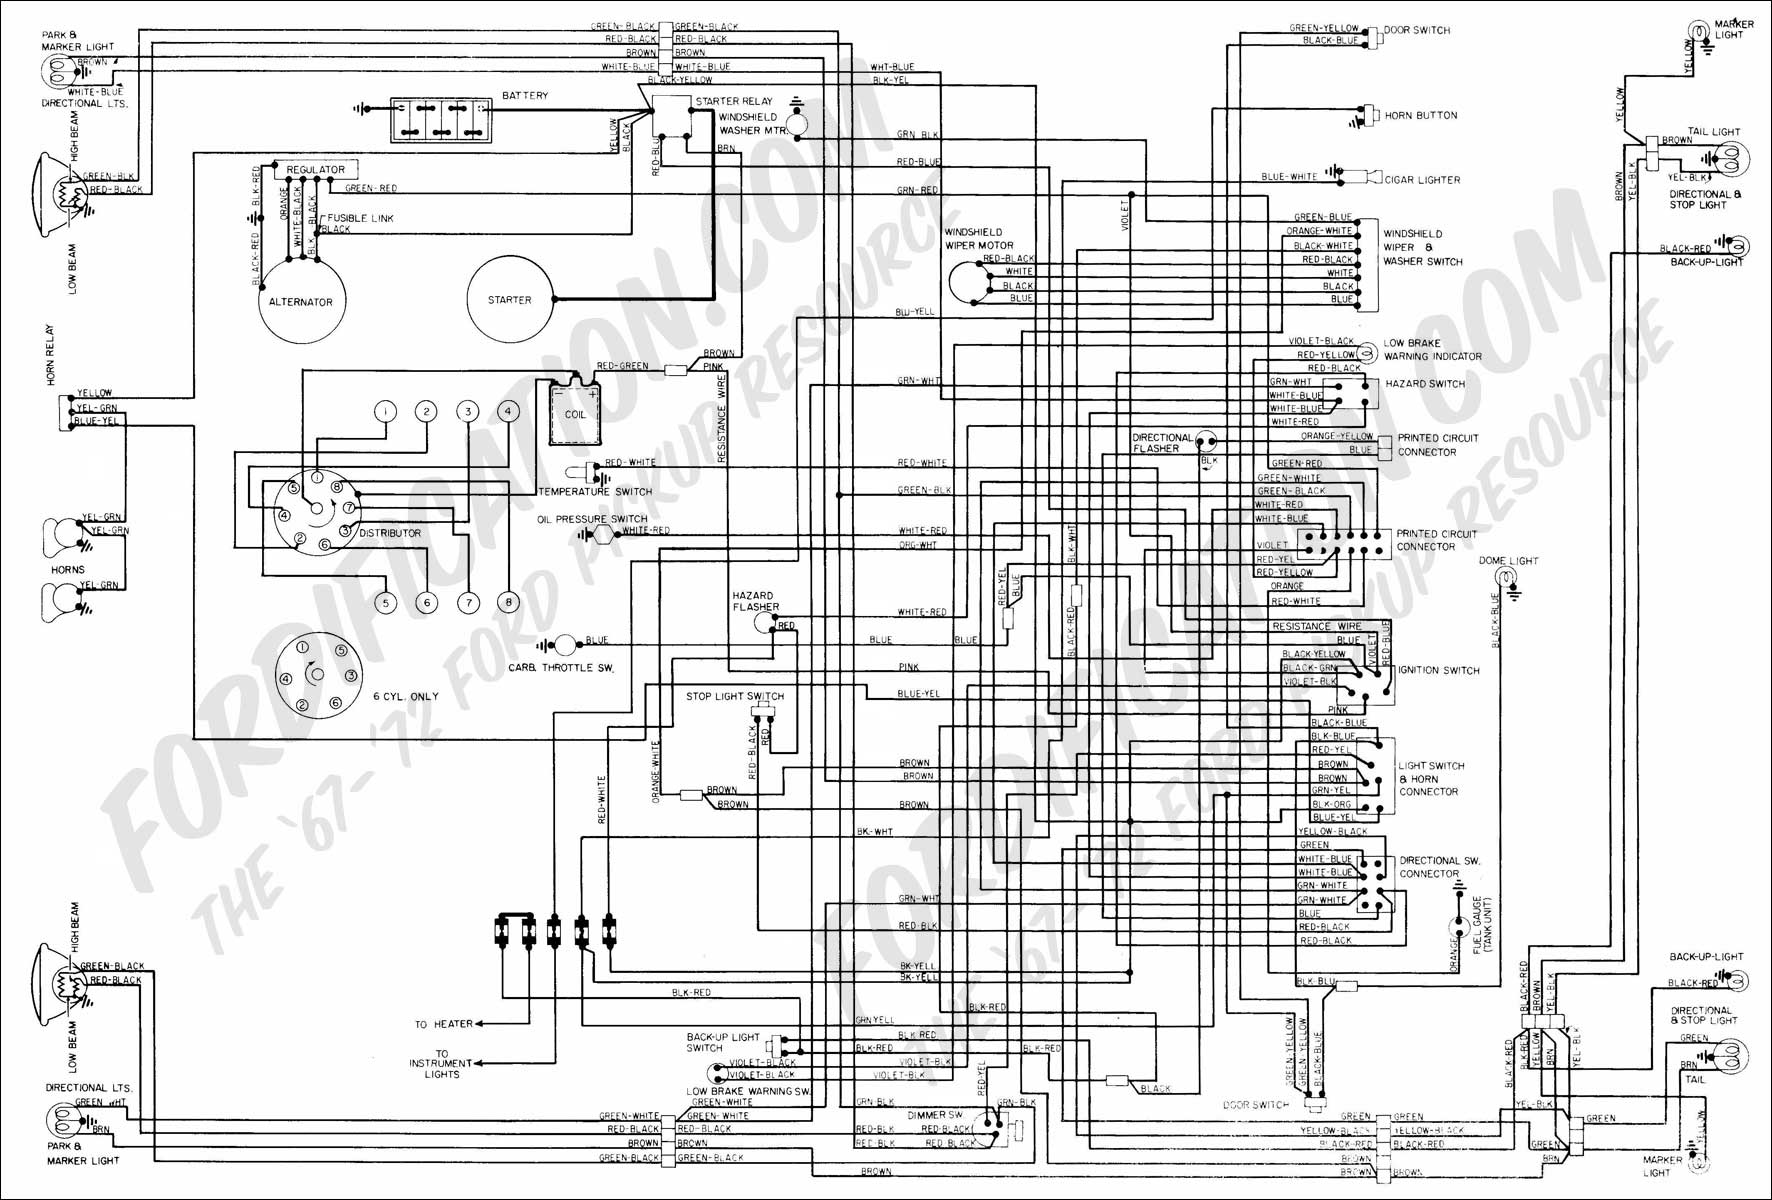 1967 Camaro Alternator Wiring Diagram Nilzanet – 1969 Chevelle Wiring Diagram